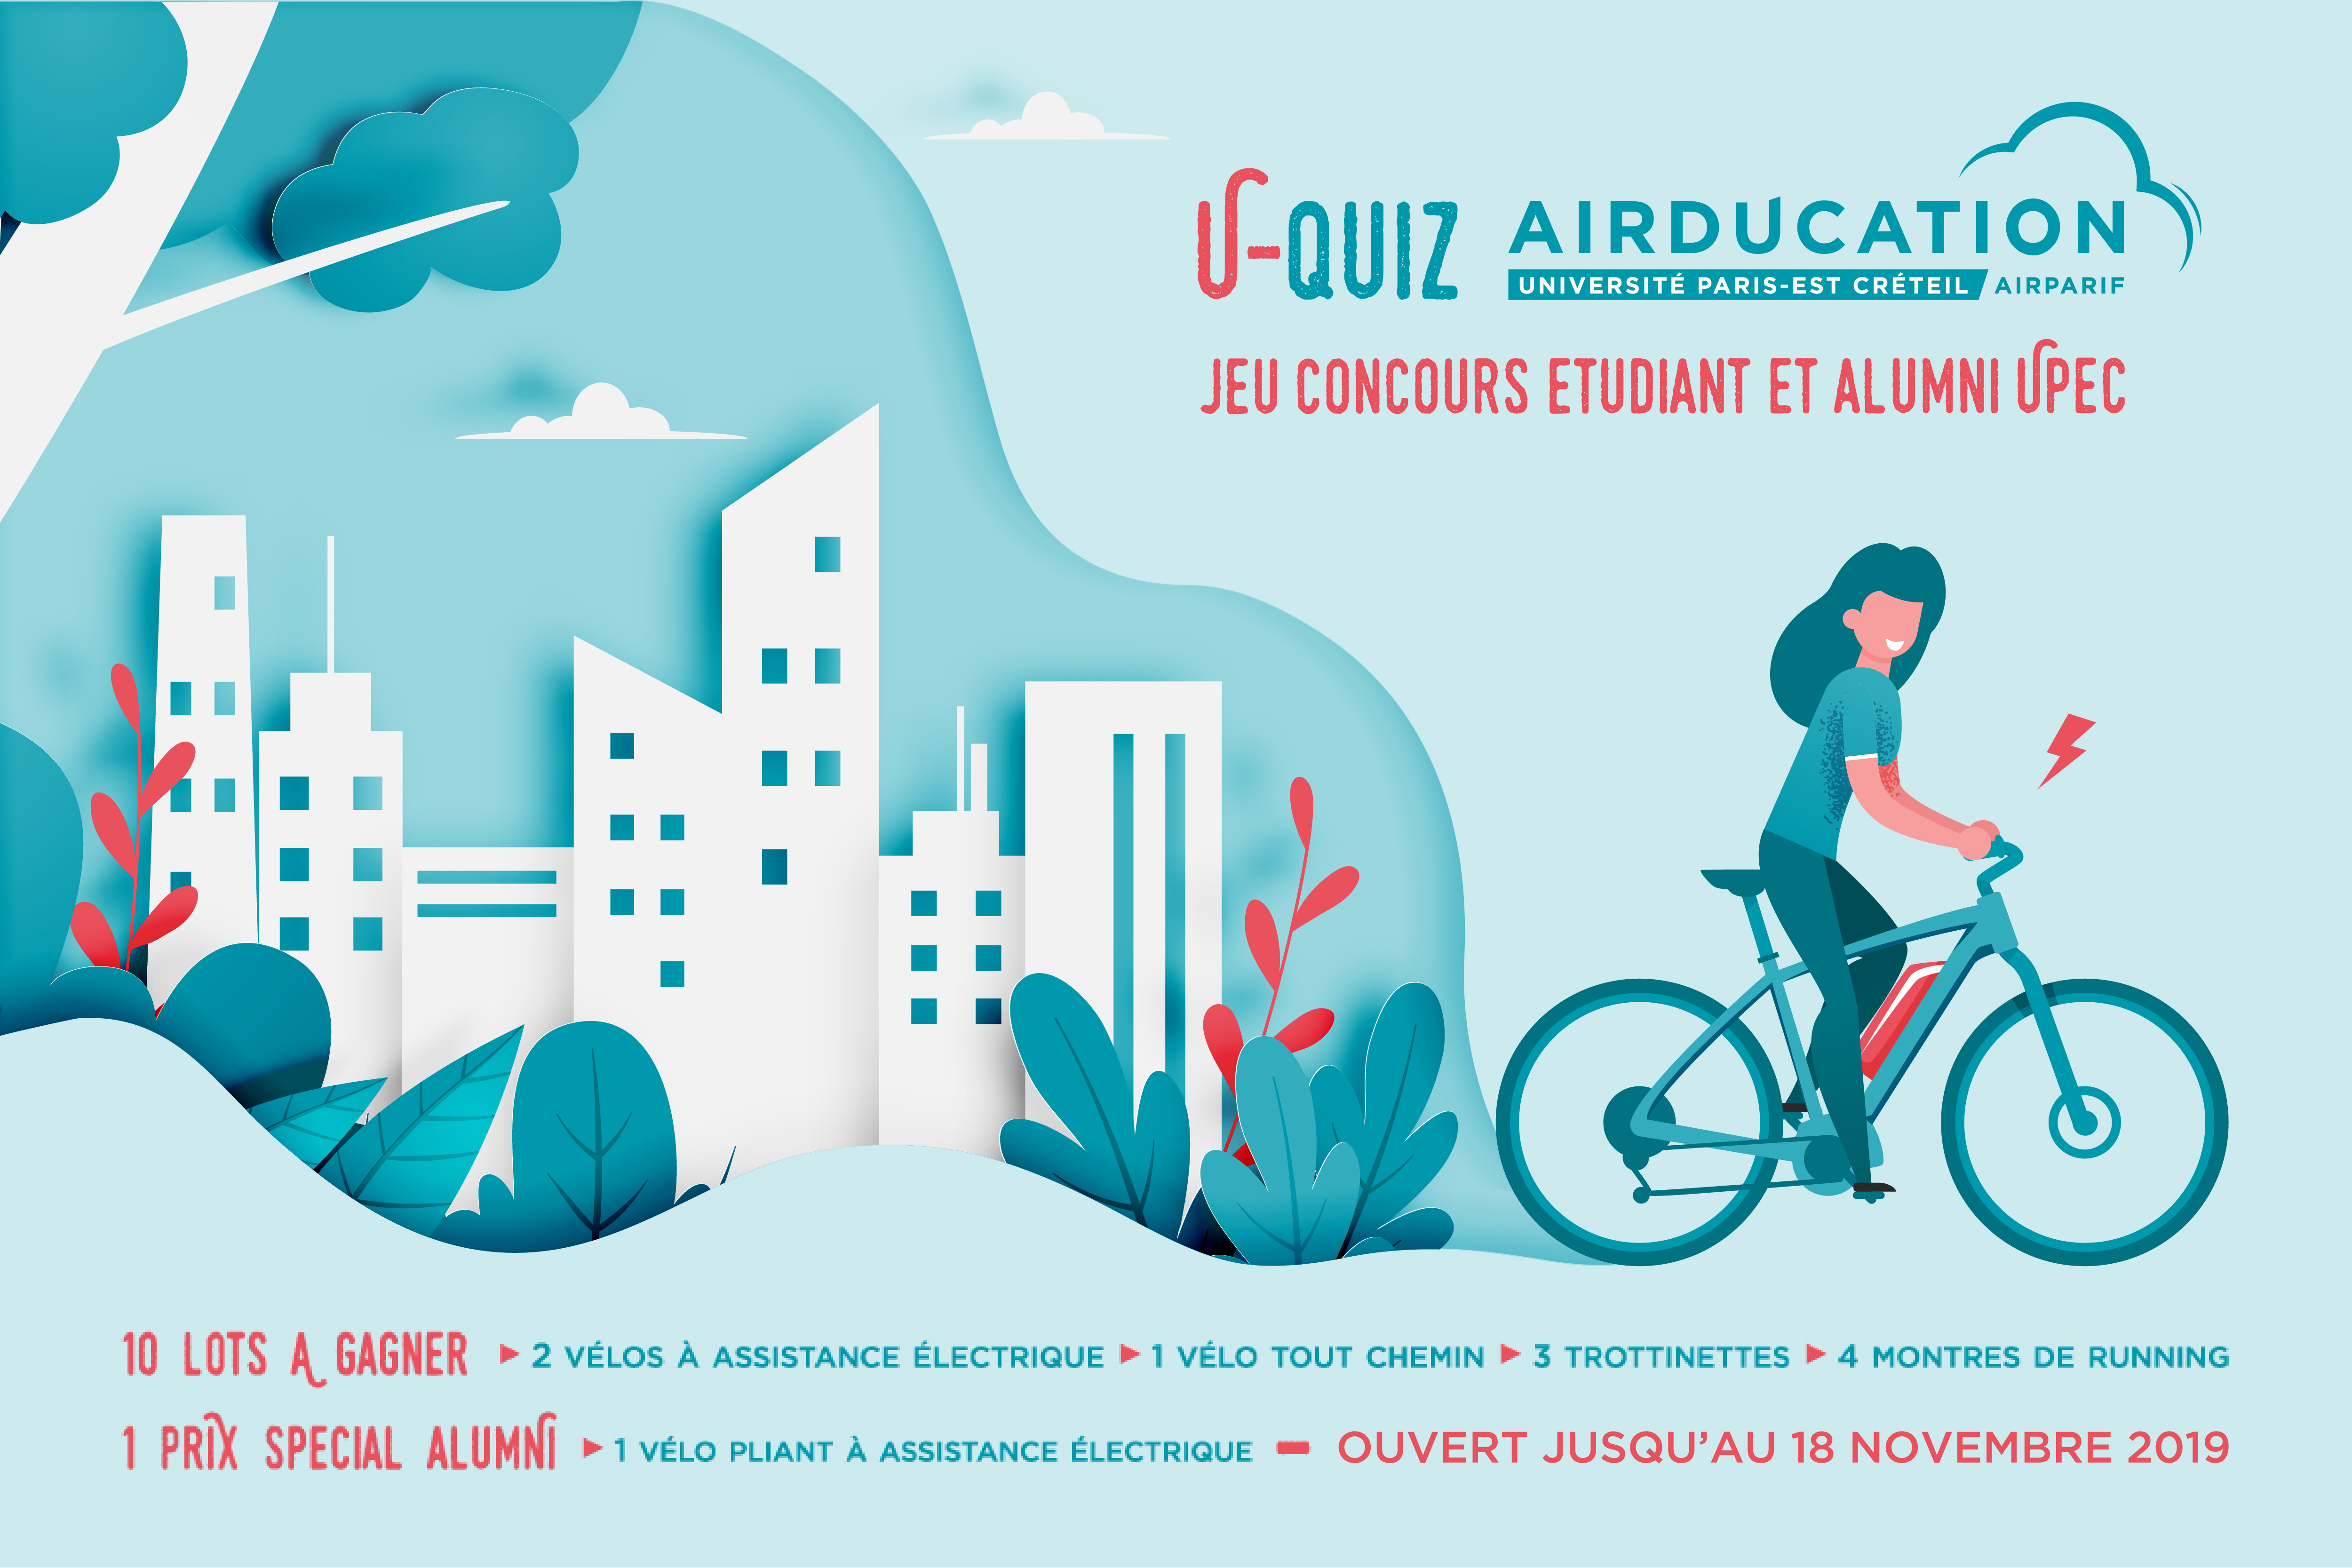 U-QUIZ AIRDUCATION -